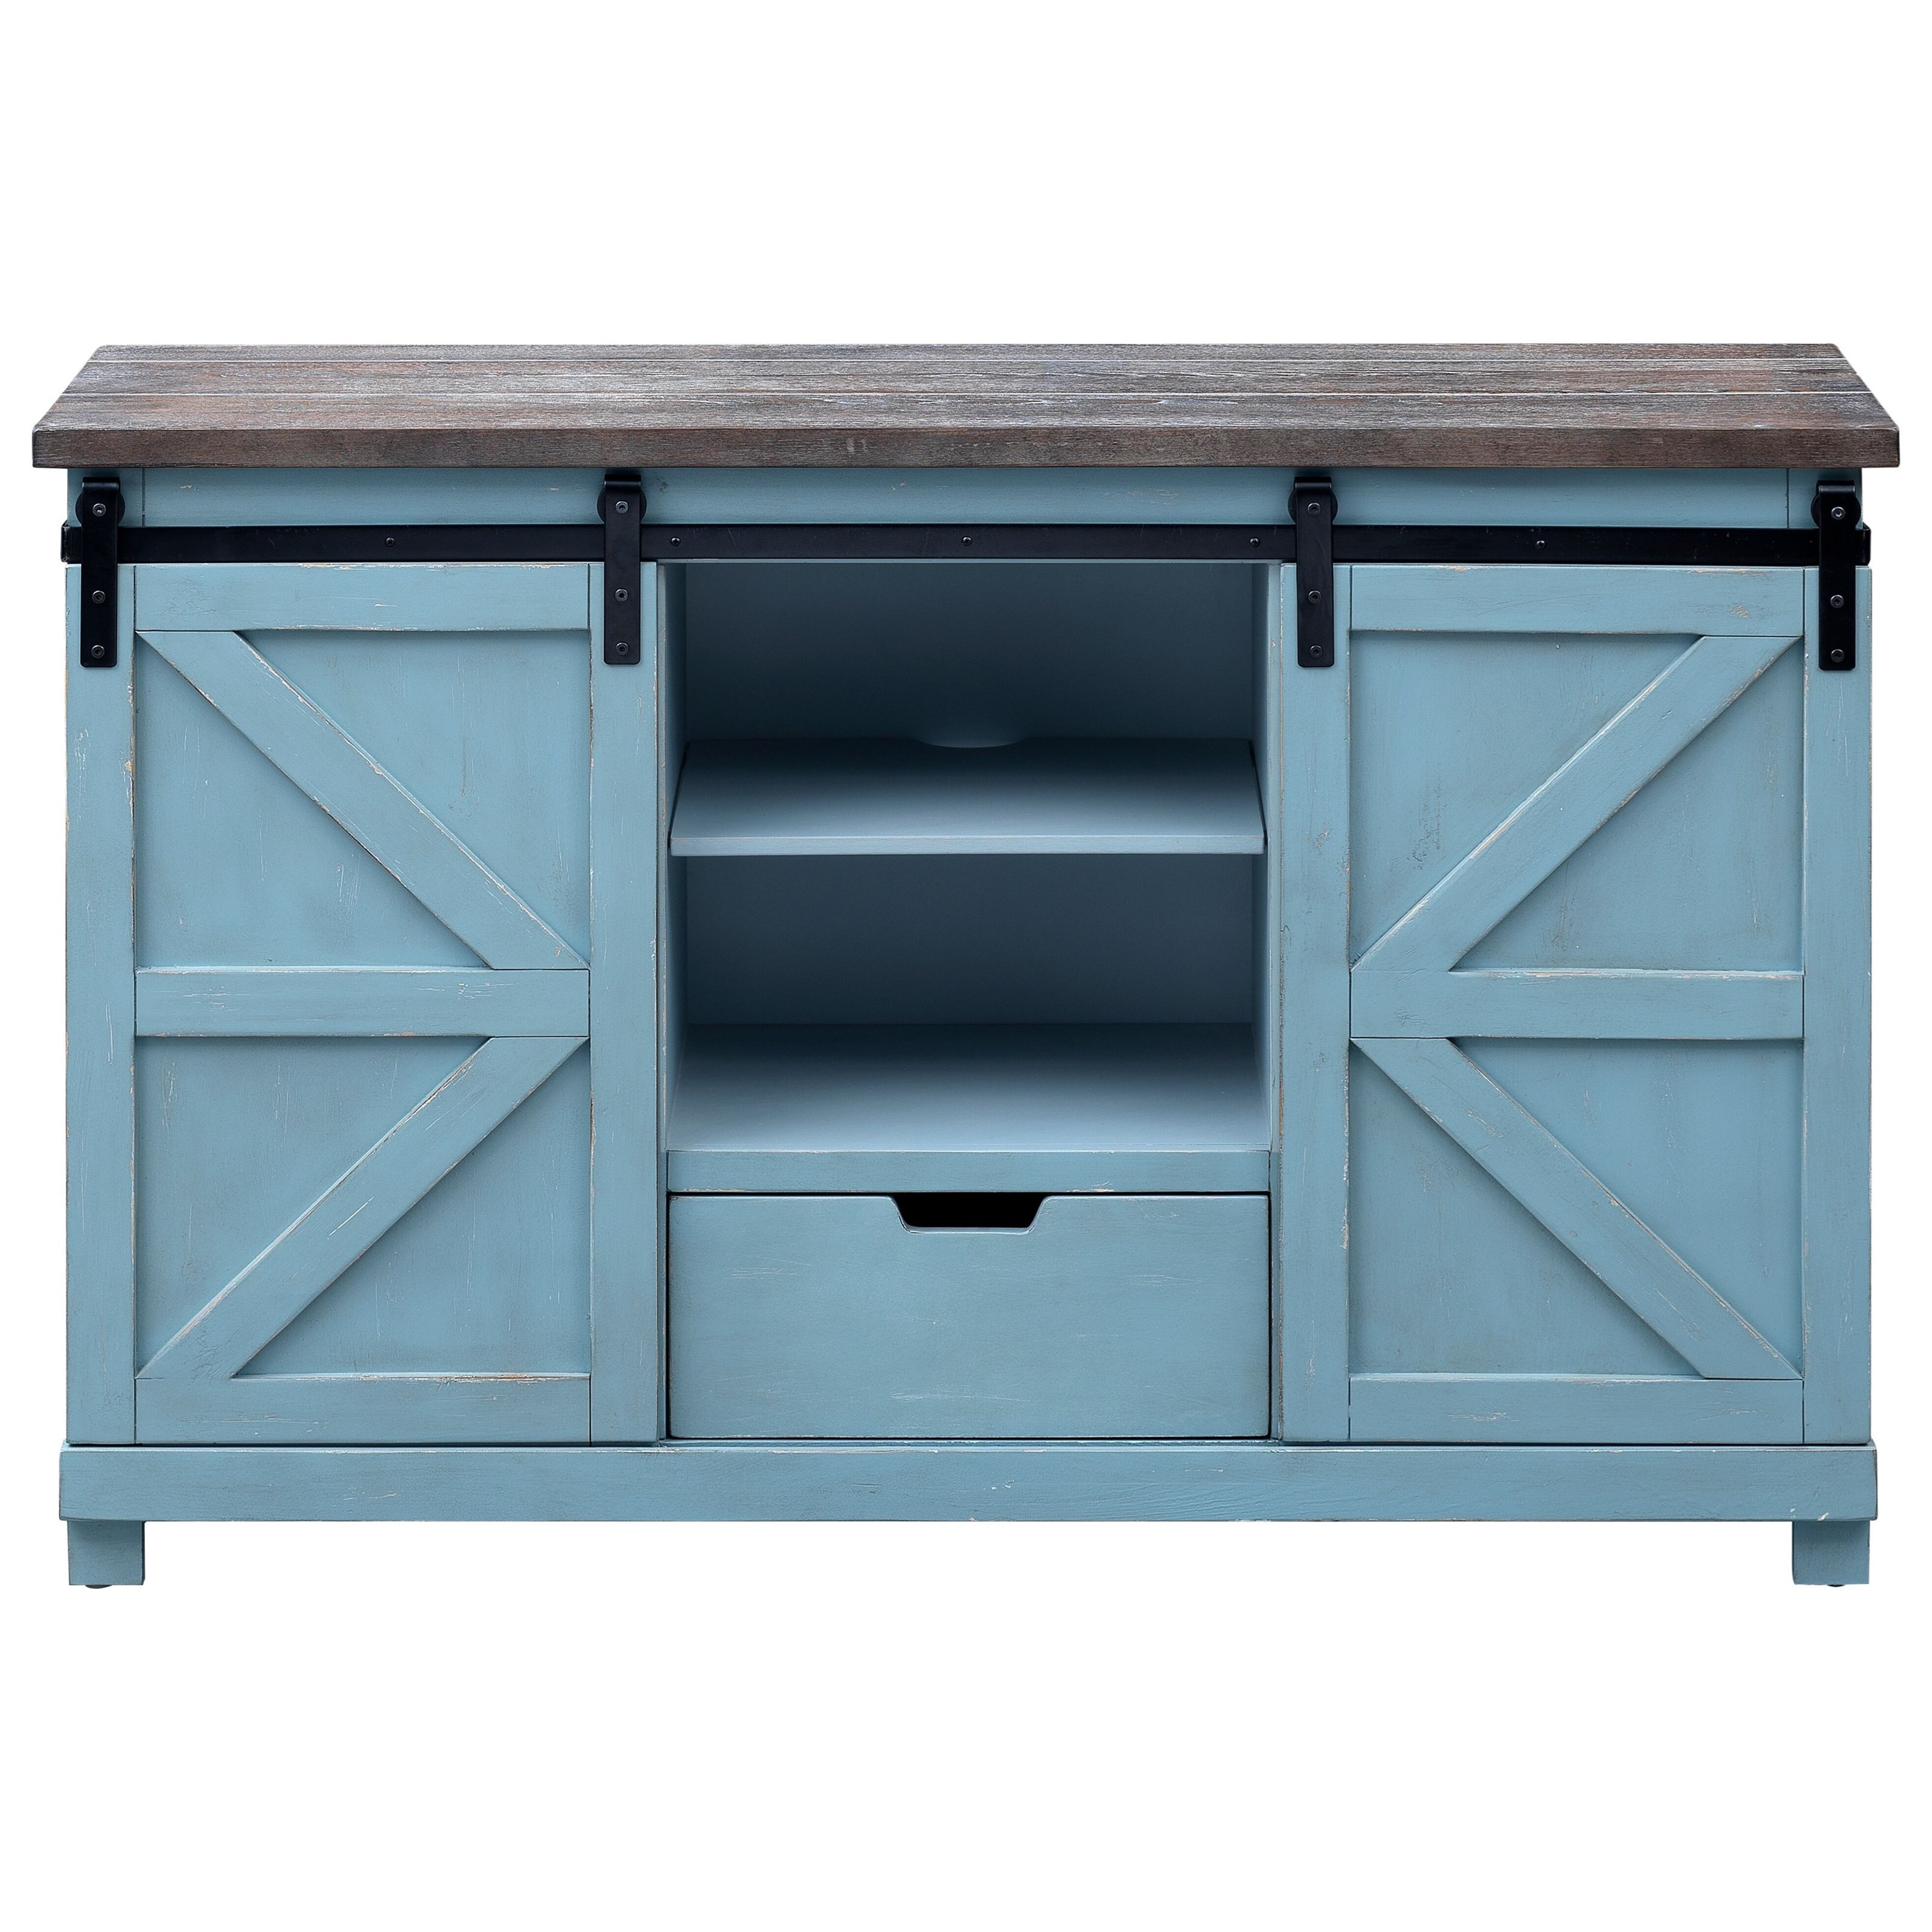 Bar Harbor 2-Door, 1-Drawer Credenza by Coast to Coast Imports at Baer's Furniture